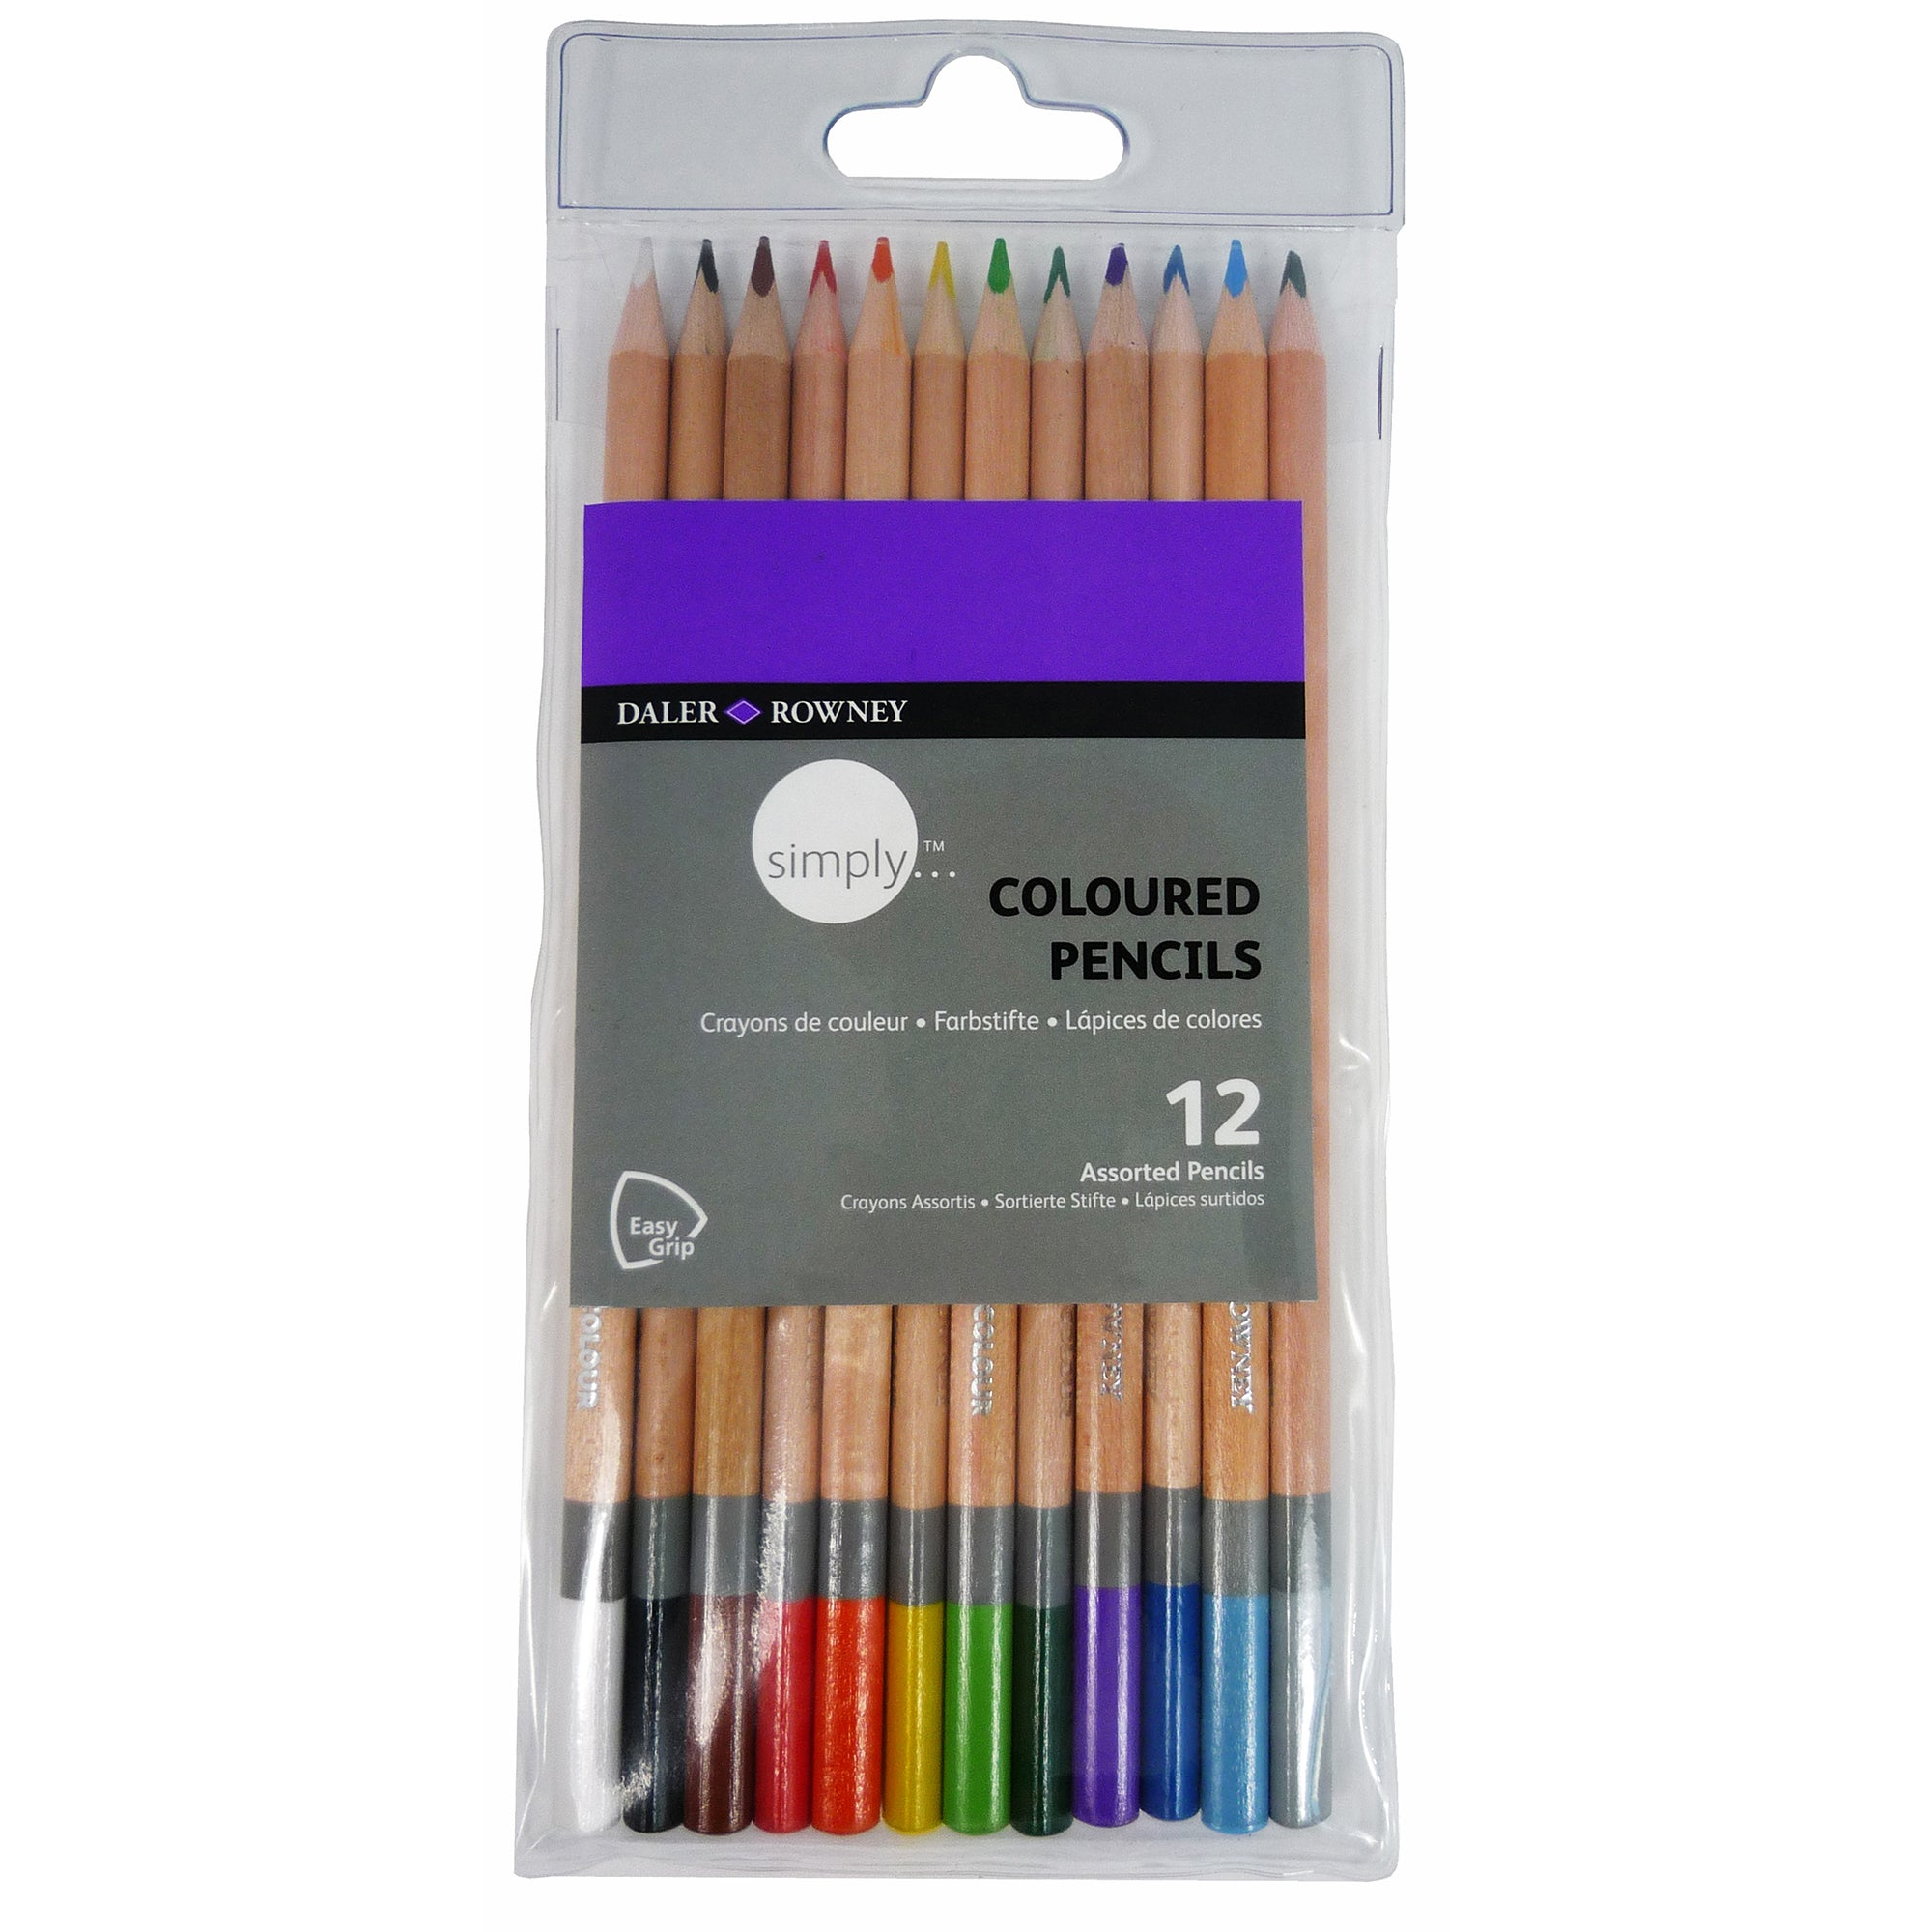 Daler Rowney Simply Coloured Pencils